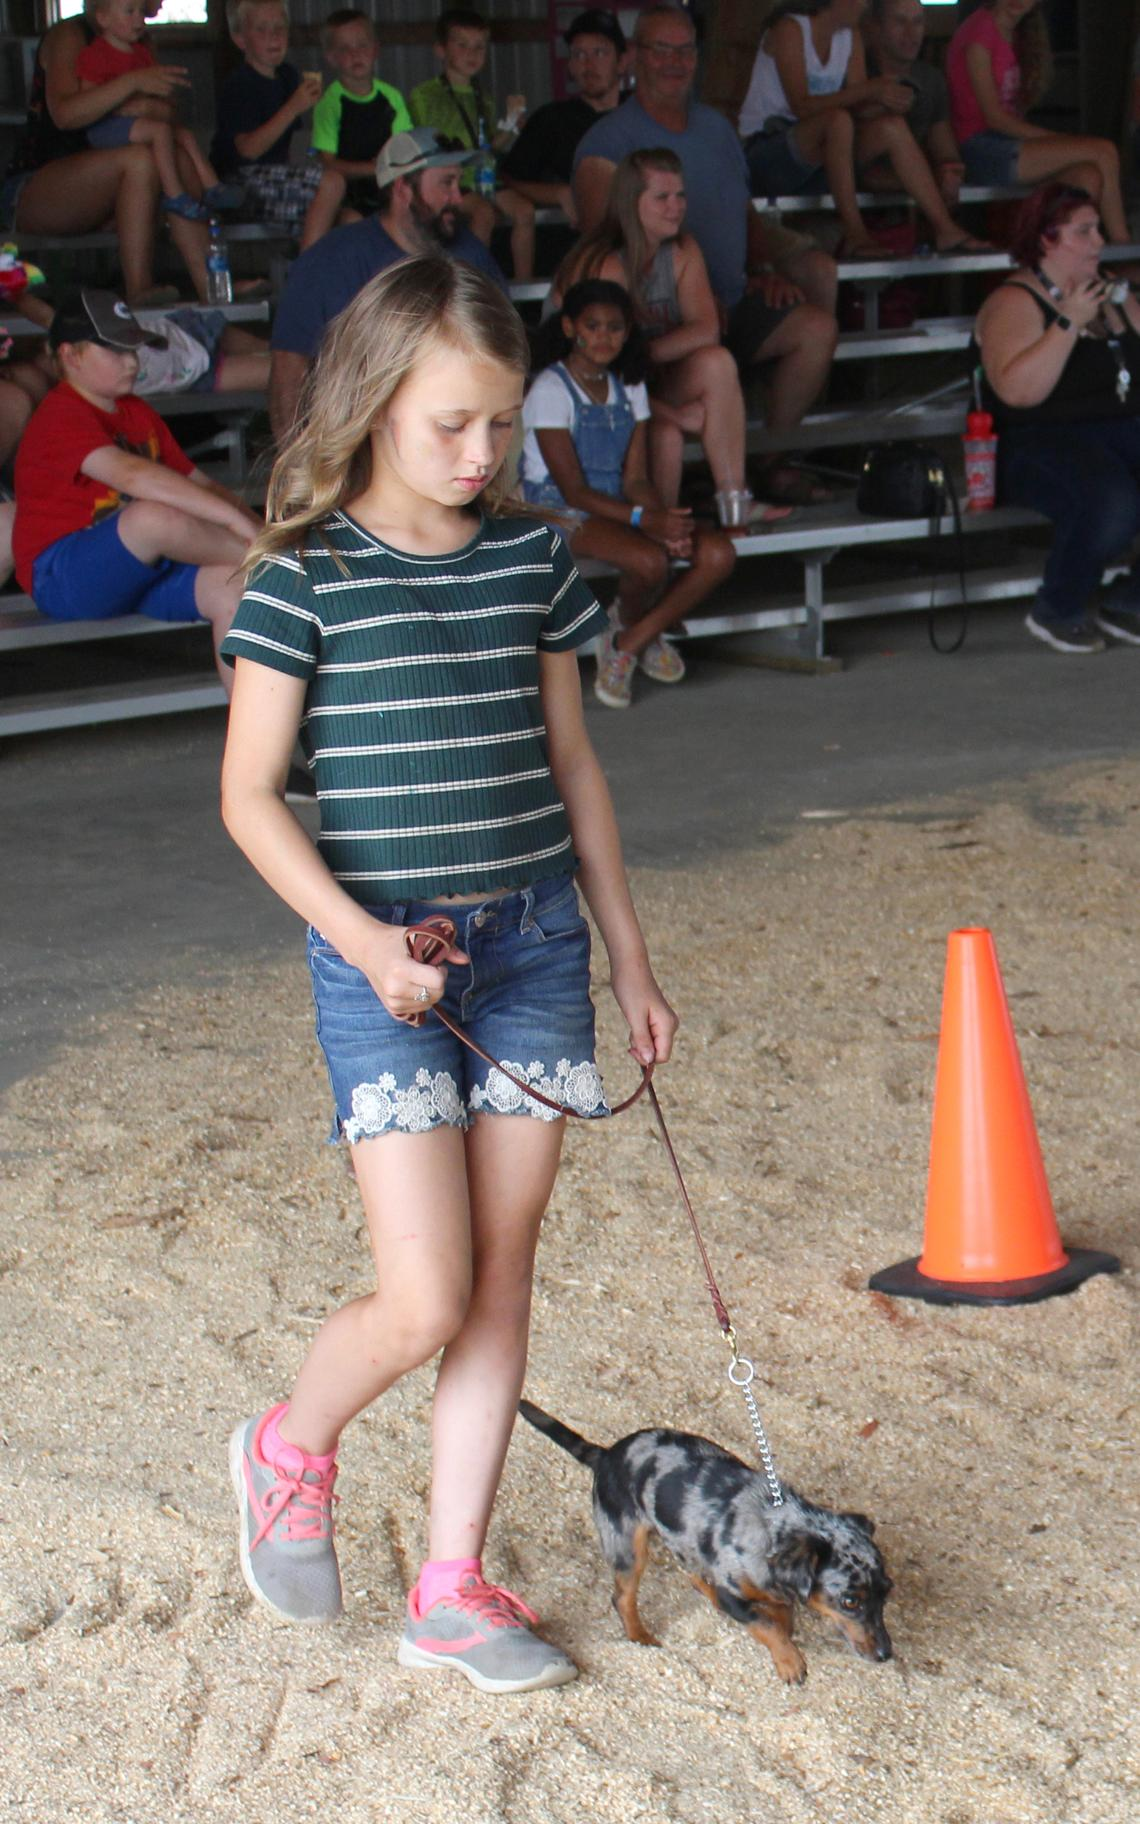 Elaina Doll walks her dog Zoe in the obedience segment of the 4-H dog show Saturday, July 17 at the Hubbard County Fair. (Robin Fish/Enterprise)